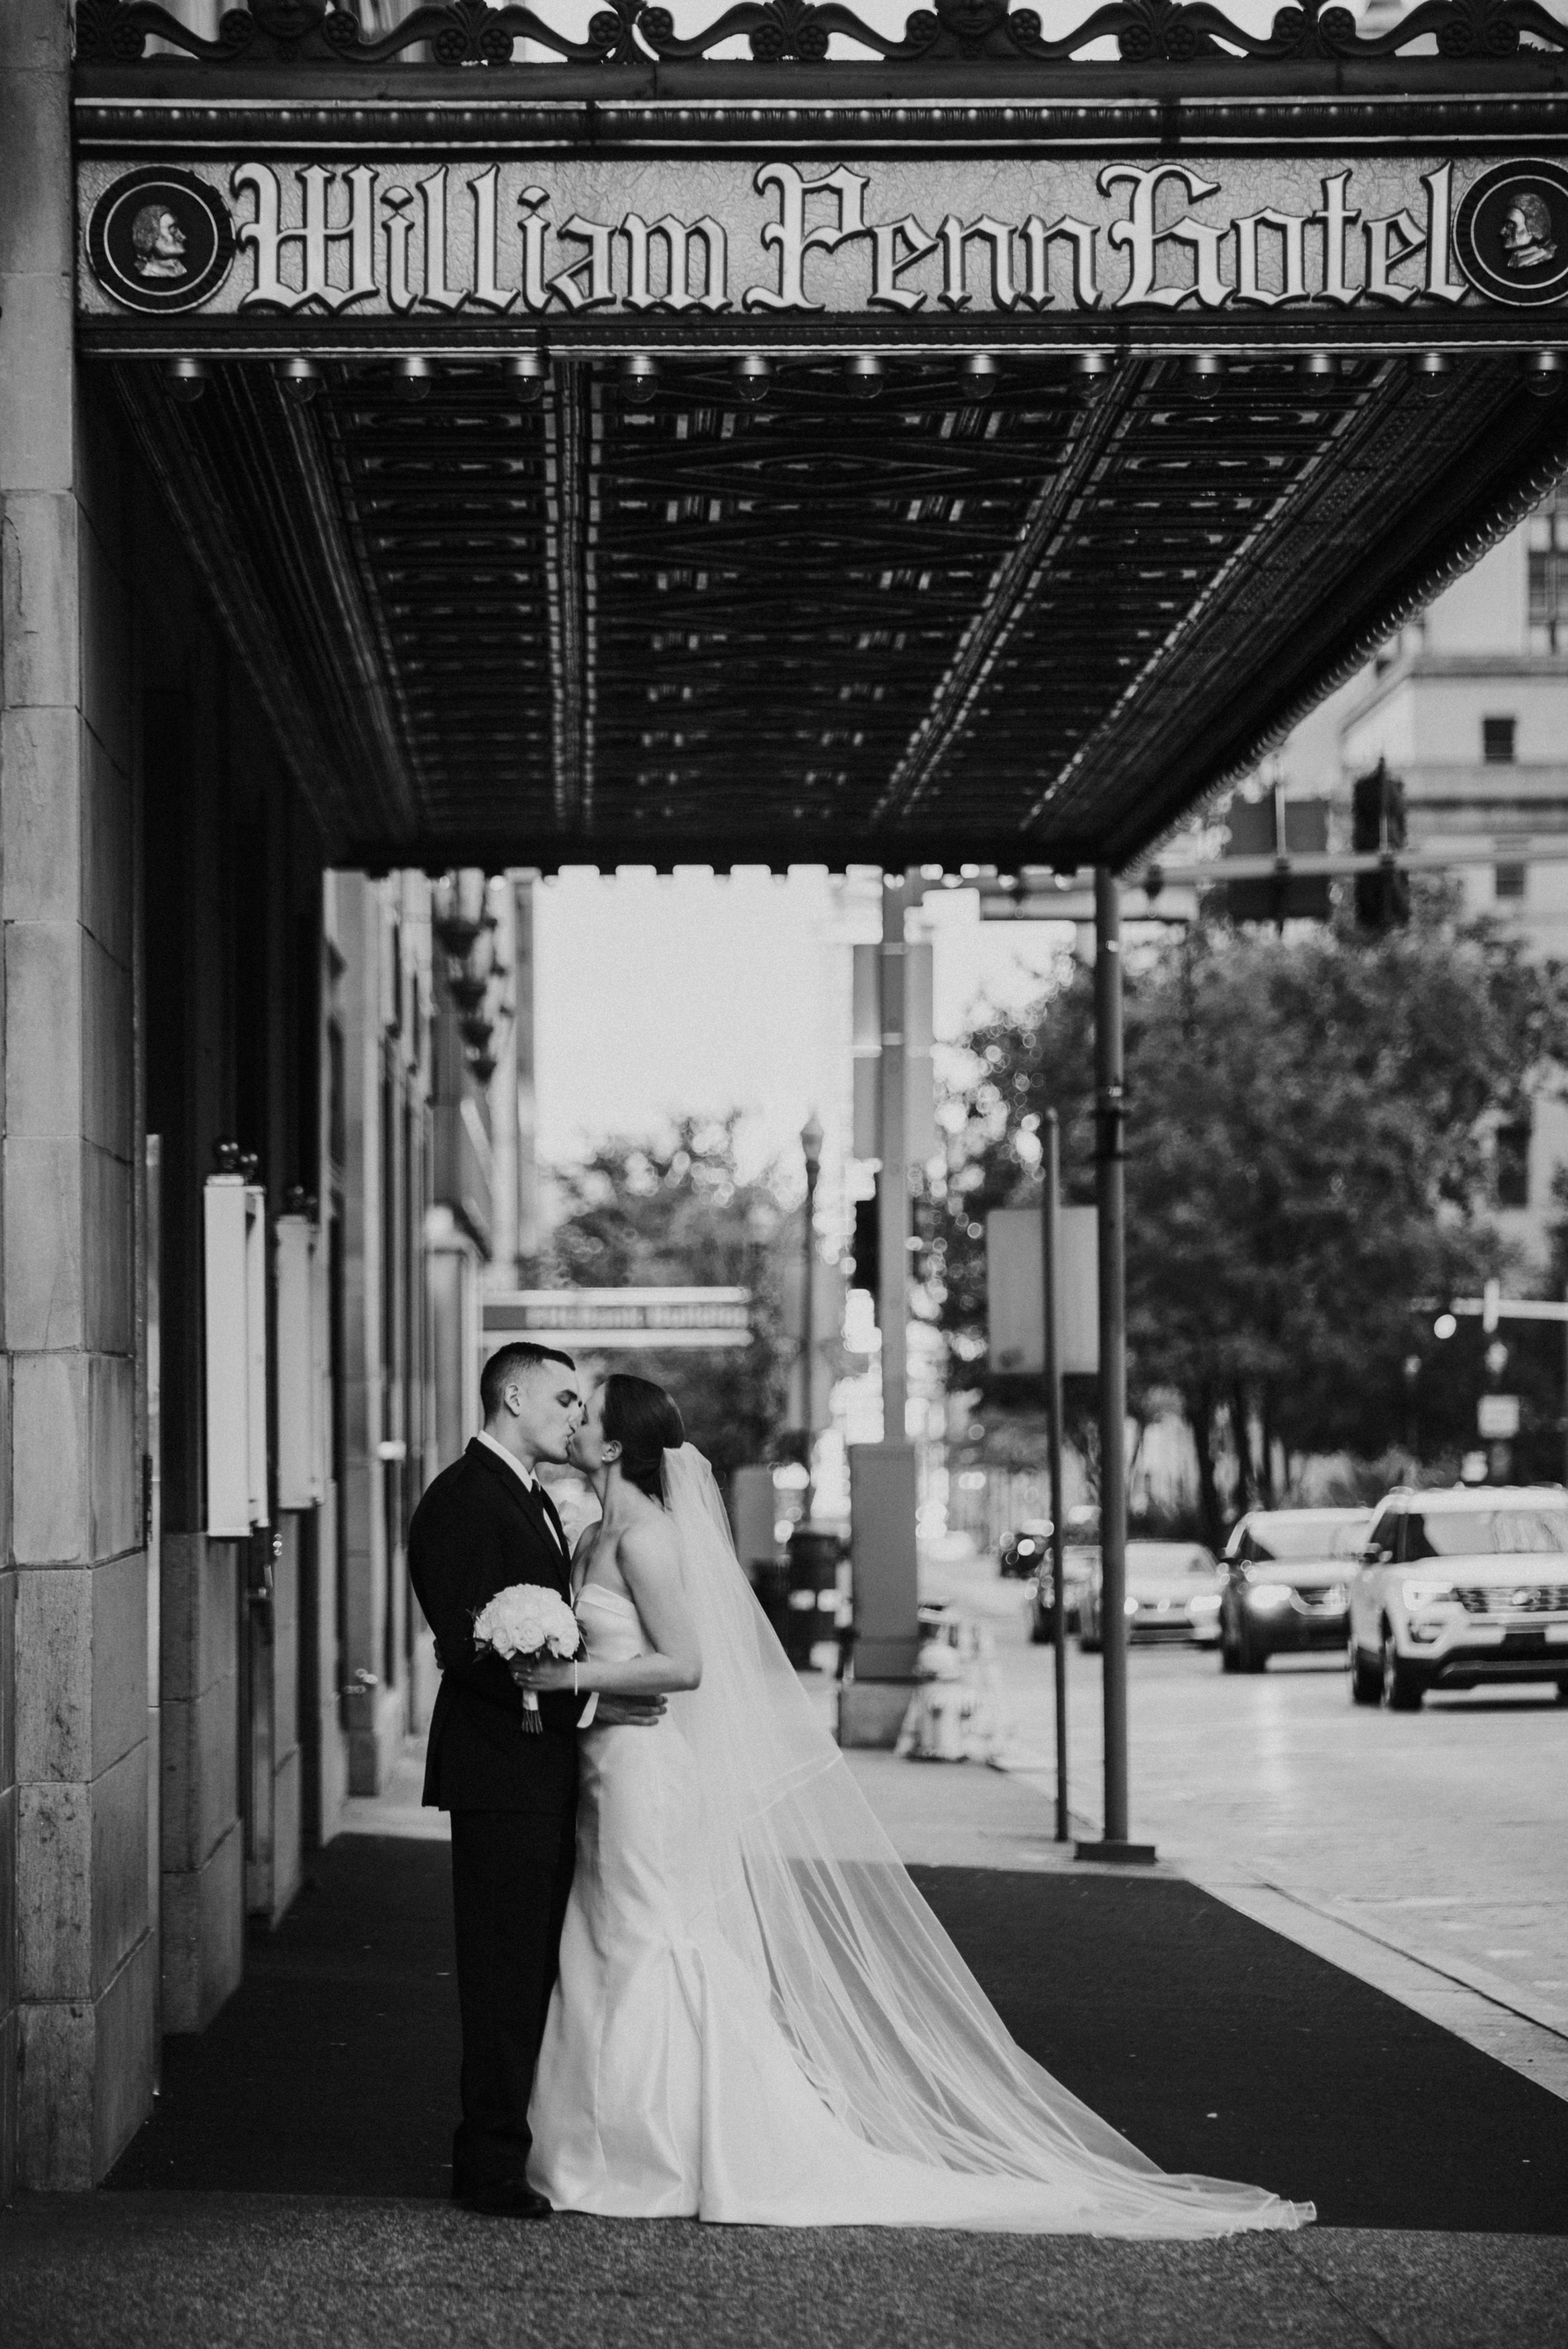 wedding at the omni william penn hotel in pittsburgh